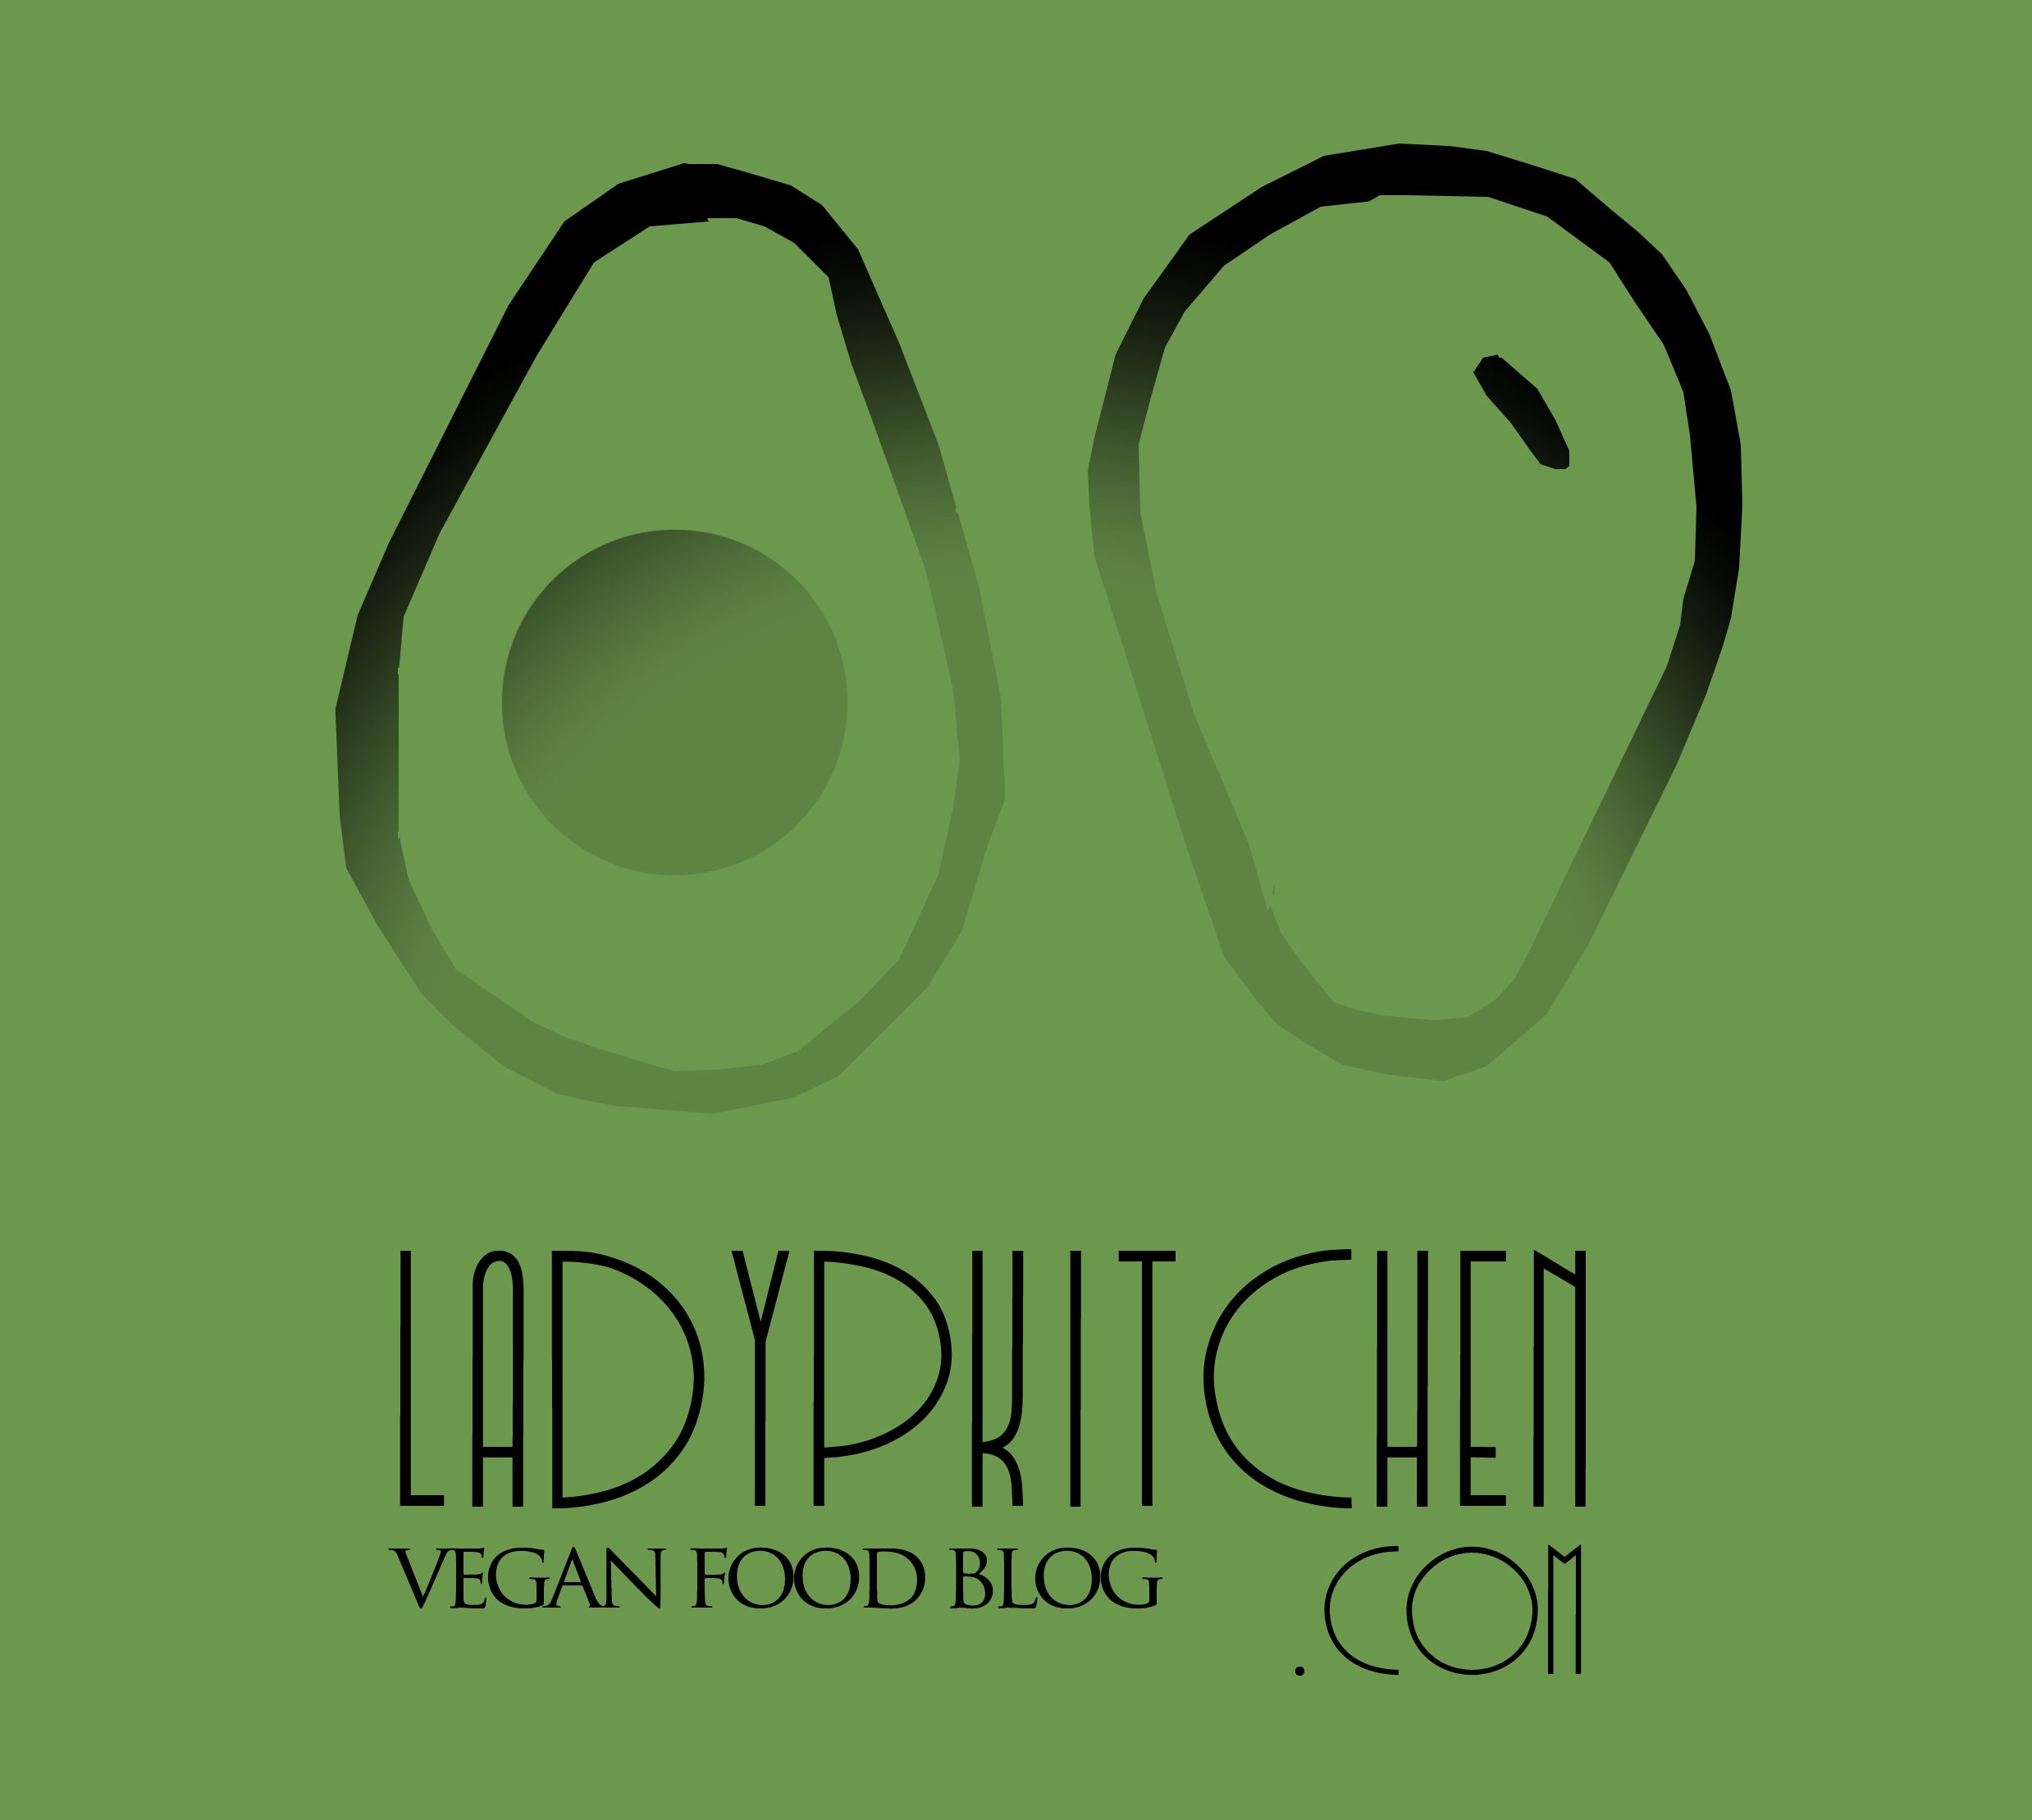 LadyPKitchen Vegan Food Blog